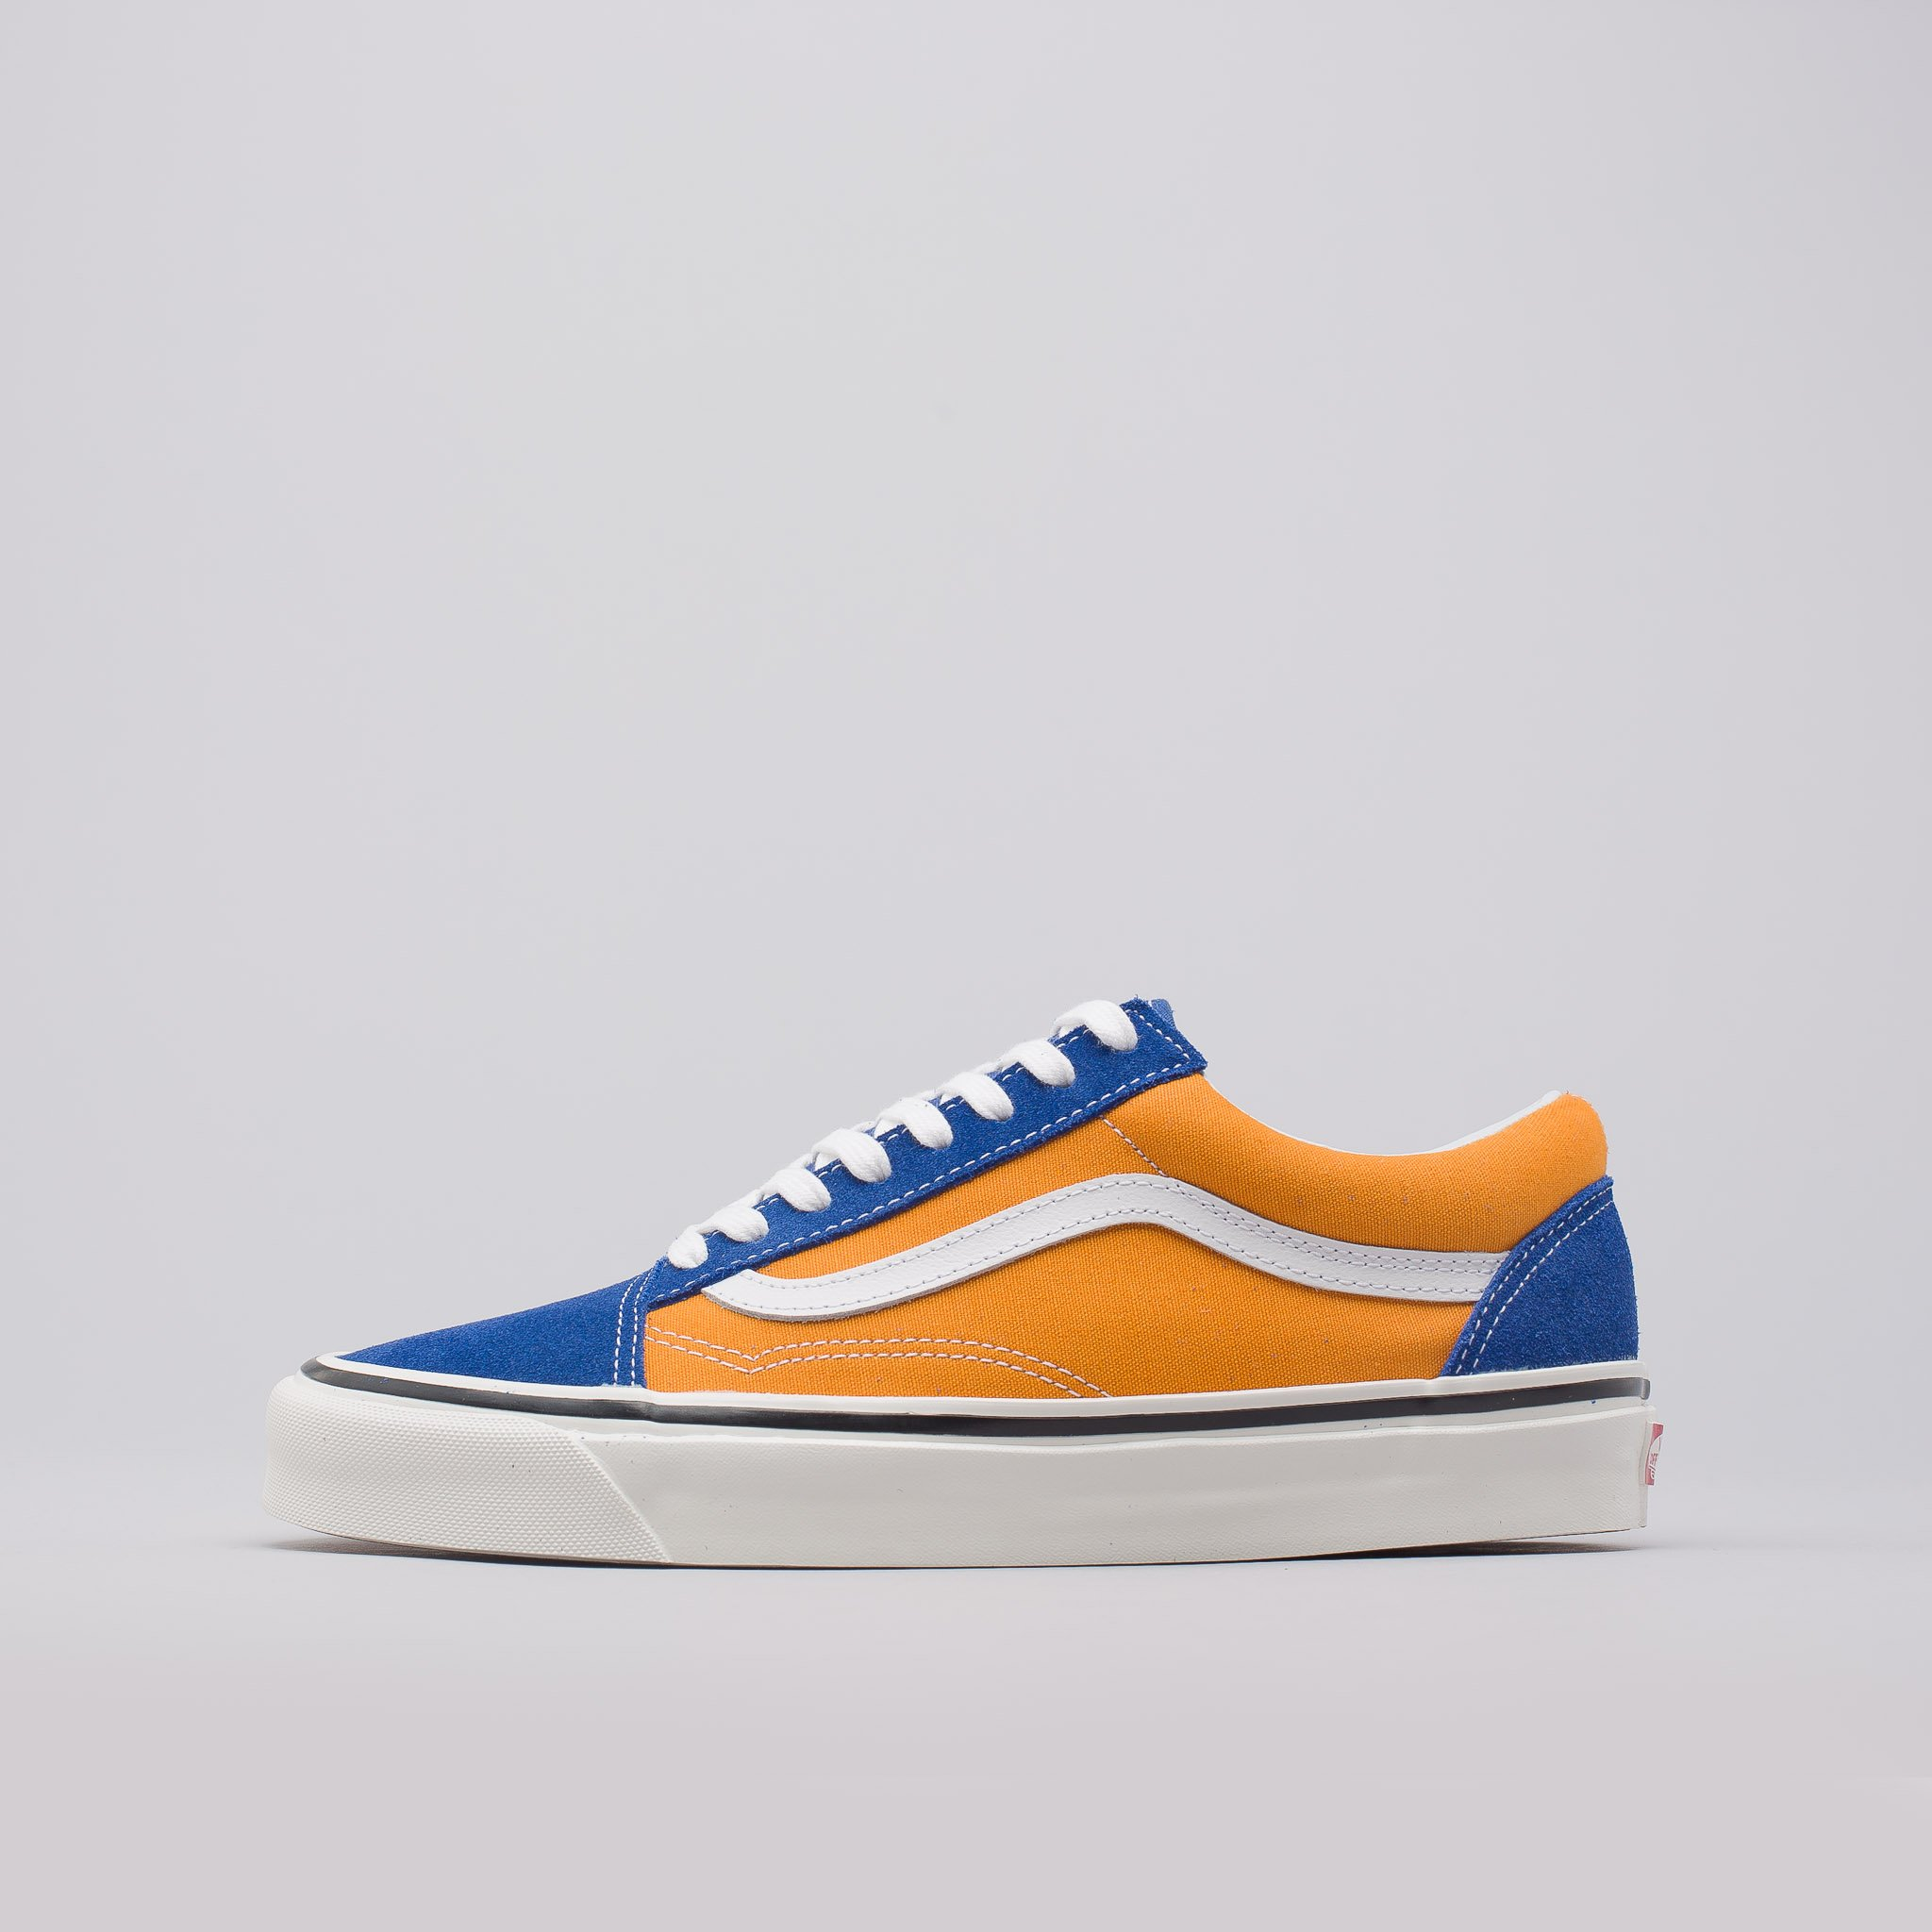 Old Skool 36 DX Anaheim Factory in OG Blue | Old skool, Blue